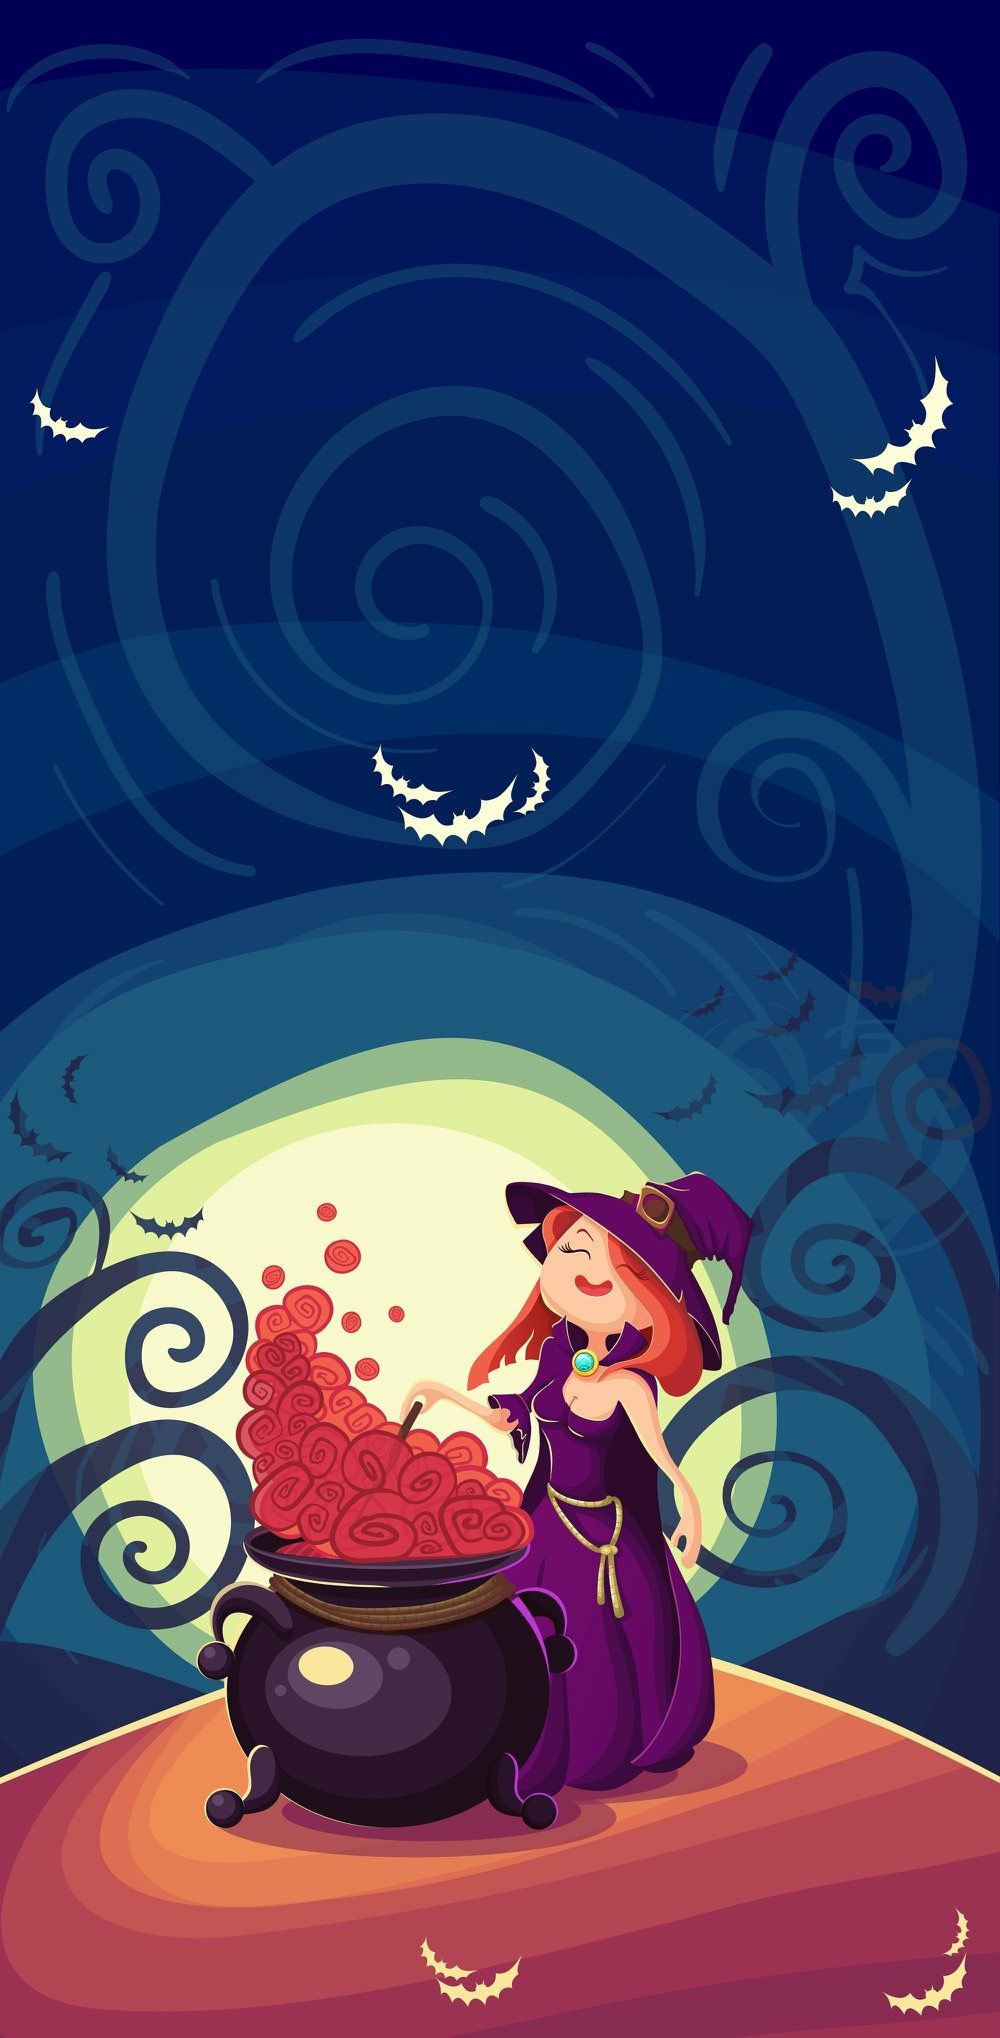 Pin by Cindy Fisher on Halloween Anime, Witches brew, Witch